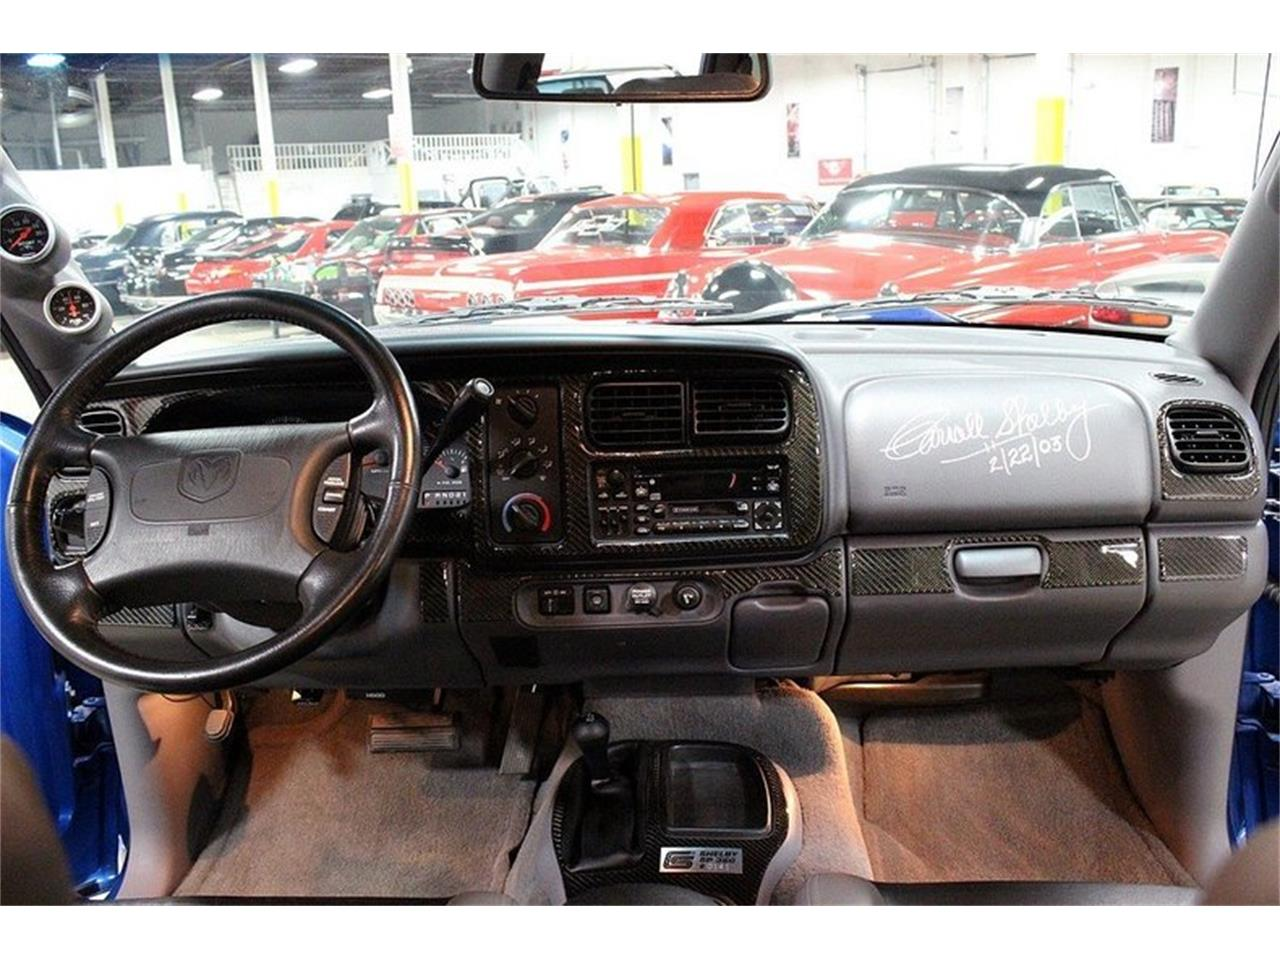 Large Picture of 1999 Durango Shelby SP-360 - $31,900.00 - MB1Y